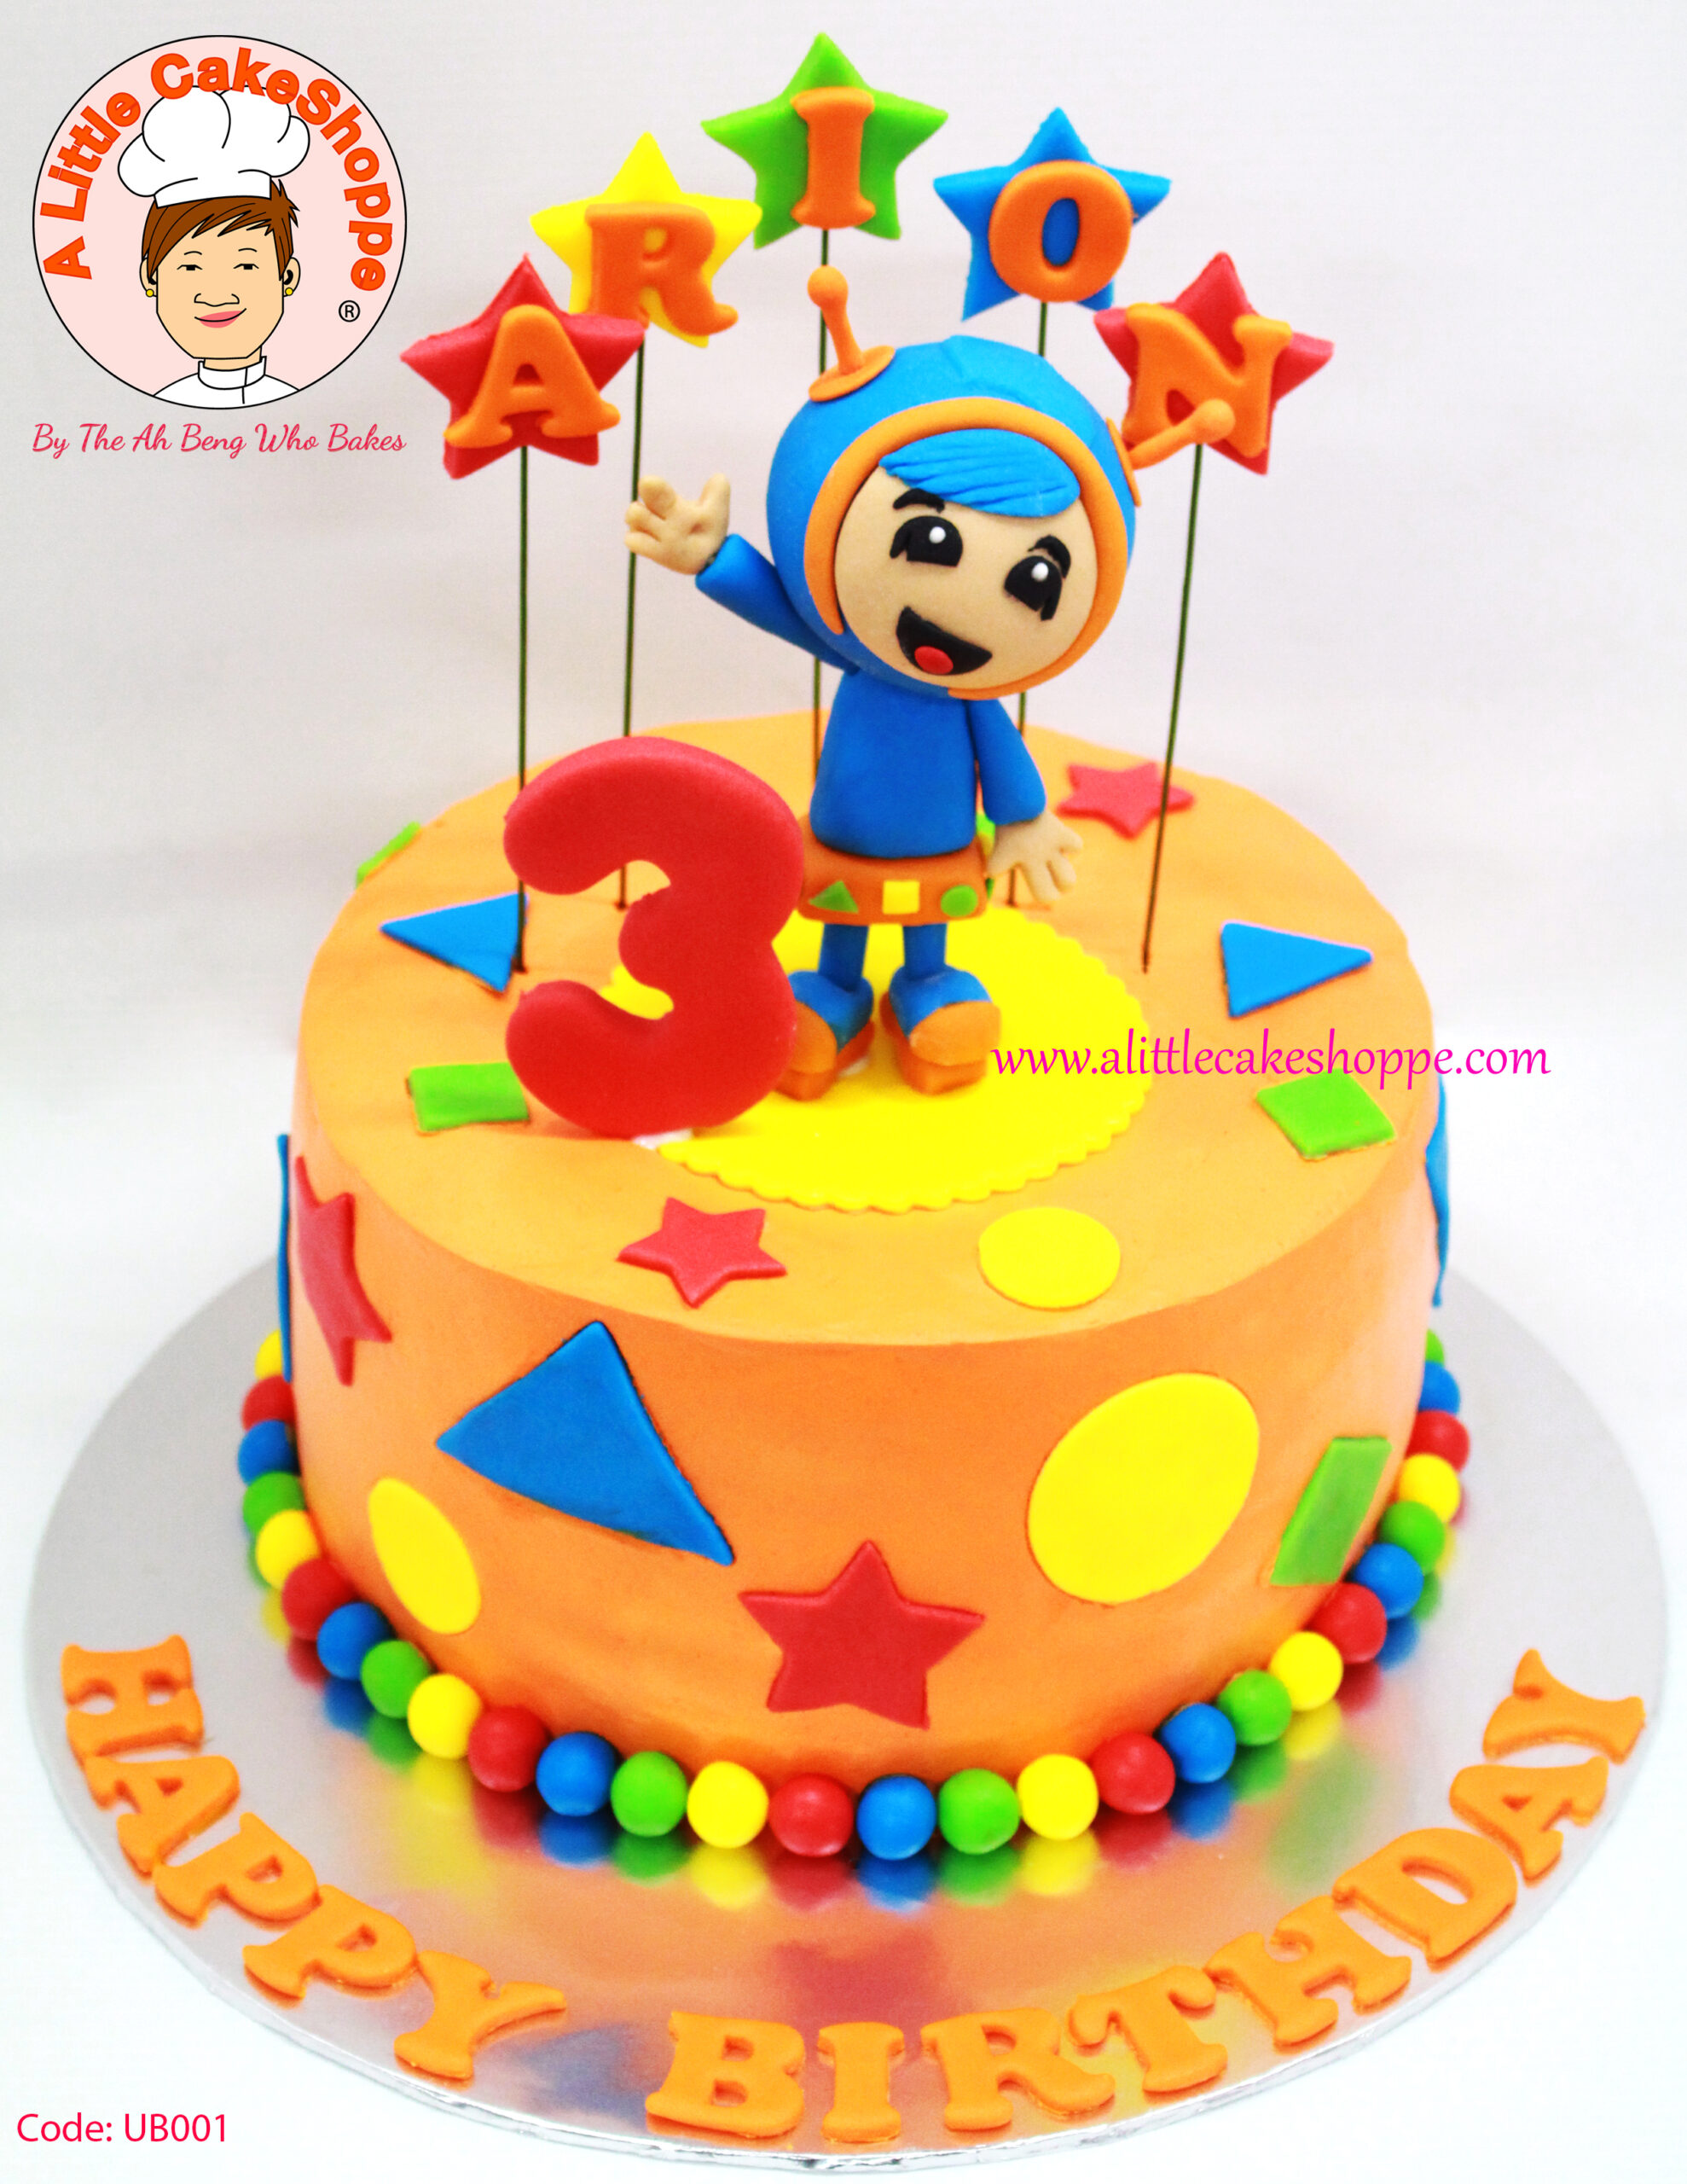 Best Customised Cake Singapore custom cake 2D 3D birthday cake cupcakes wedding corporate events anniversary fondant fresh cream buttercream cakes alittlecakeshoppe a little cake shoppe compliments review singapore bakers SG cakeshop ah beng who bakes wedding vanguard umizoomi